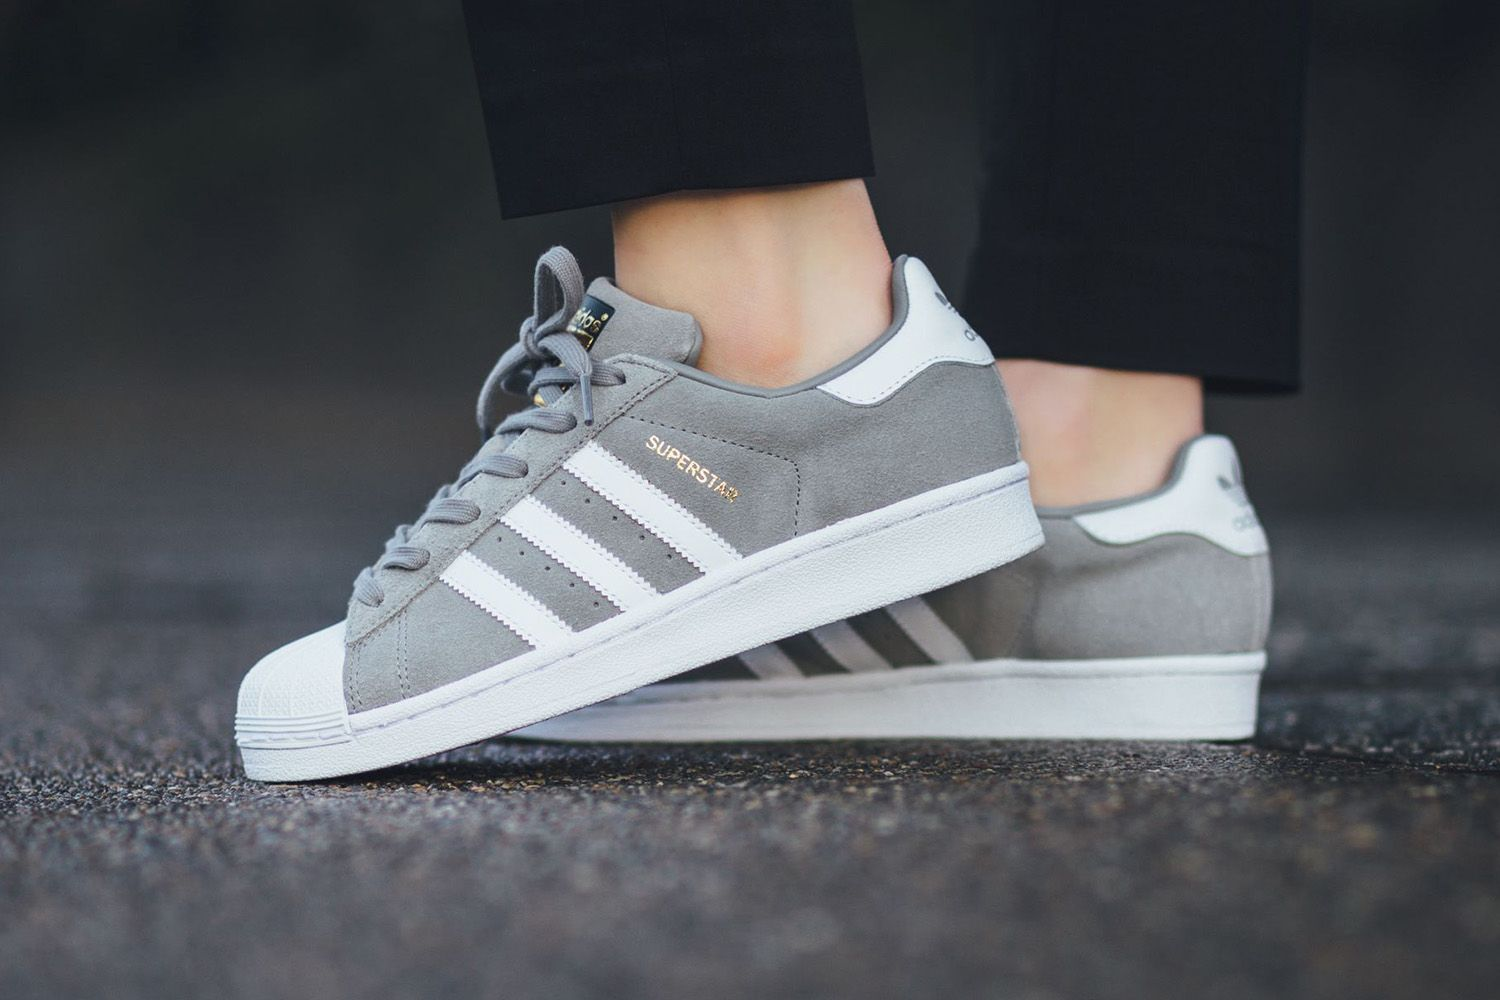 A clean gray and white colorway in premium suede. Adidas